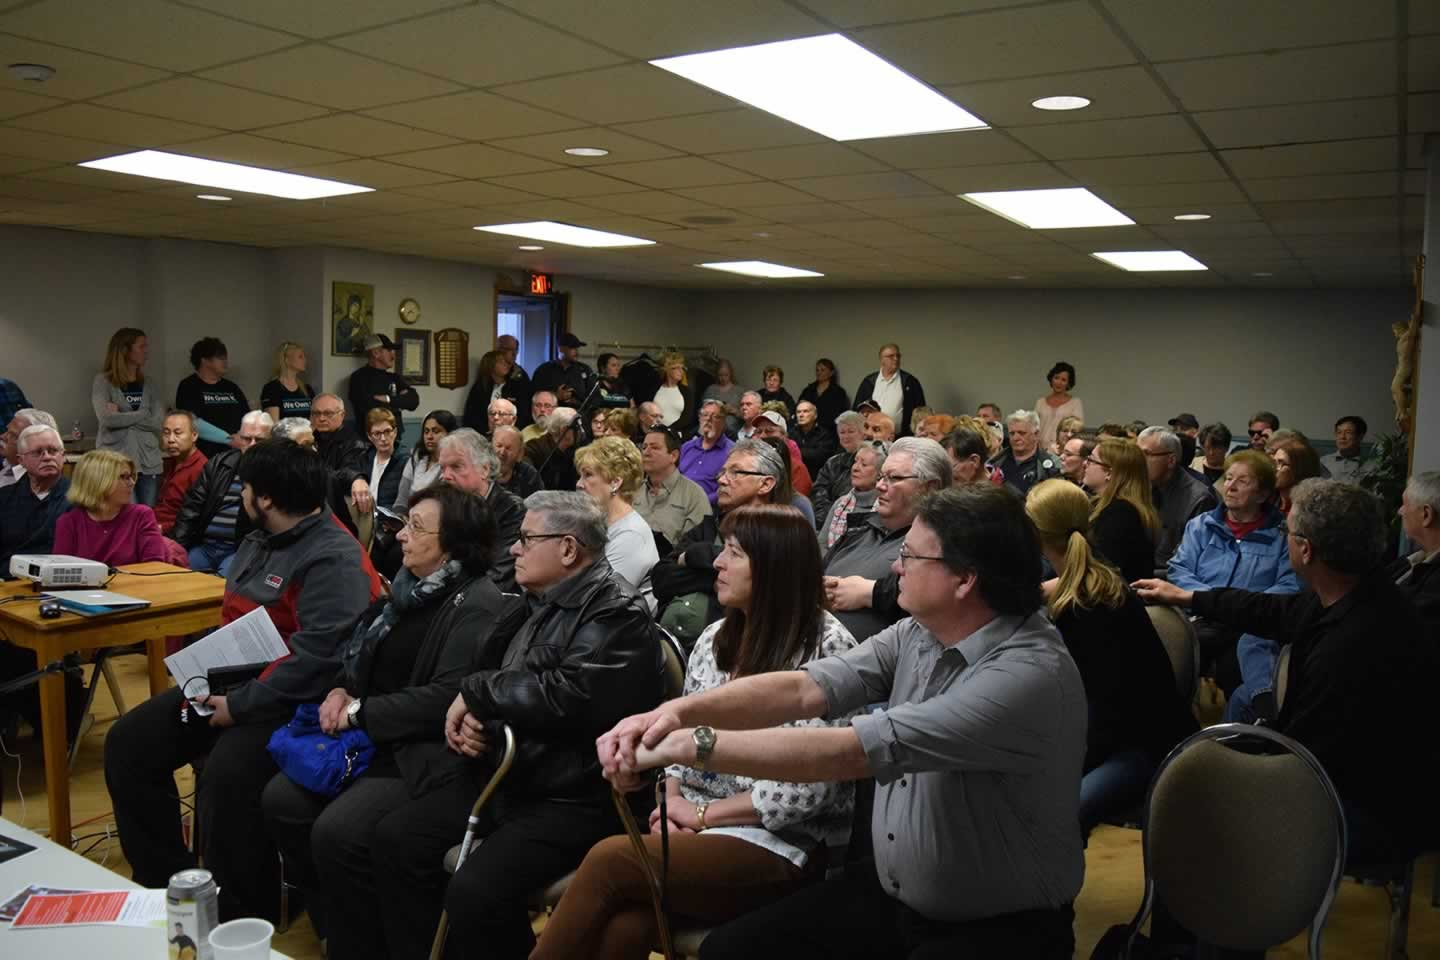 Packed room, including some OPSEU members wearing We Own It shirts, for a Belle River community meeting